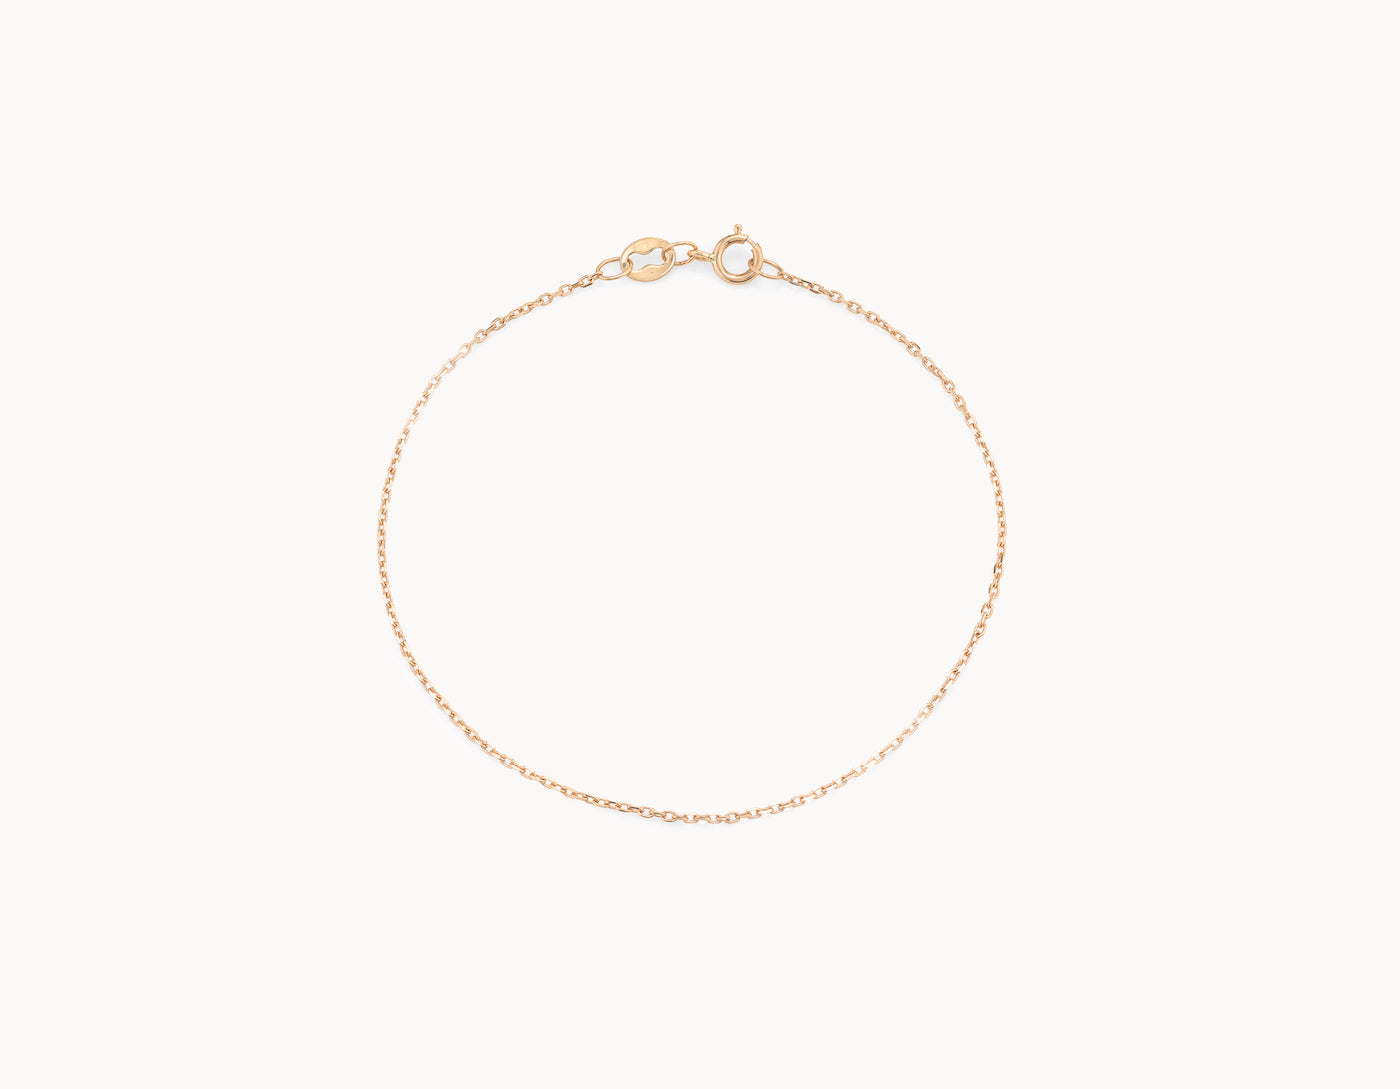 Delicate simple diamond cut Shimmer Chain Bracelet by Vrai, 14K Rose Gold